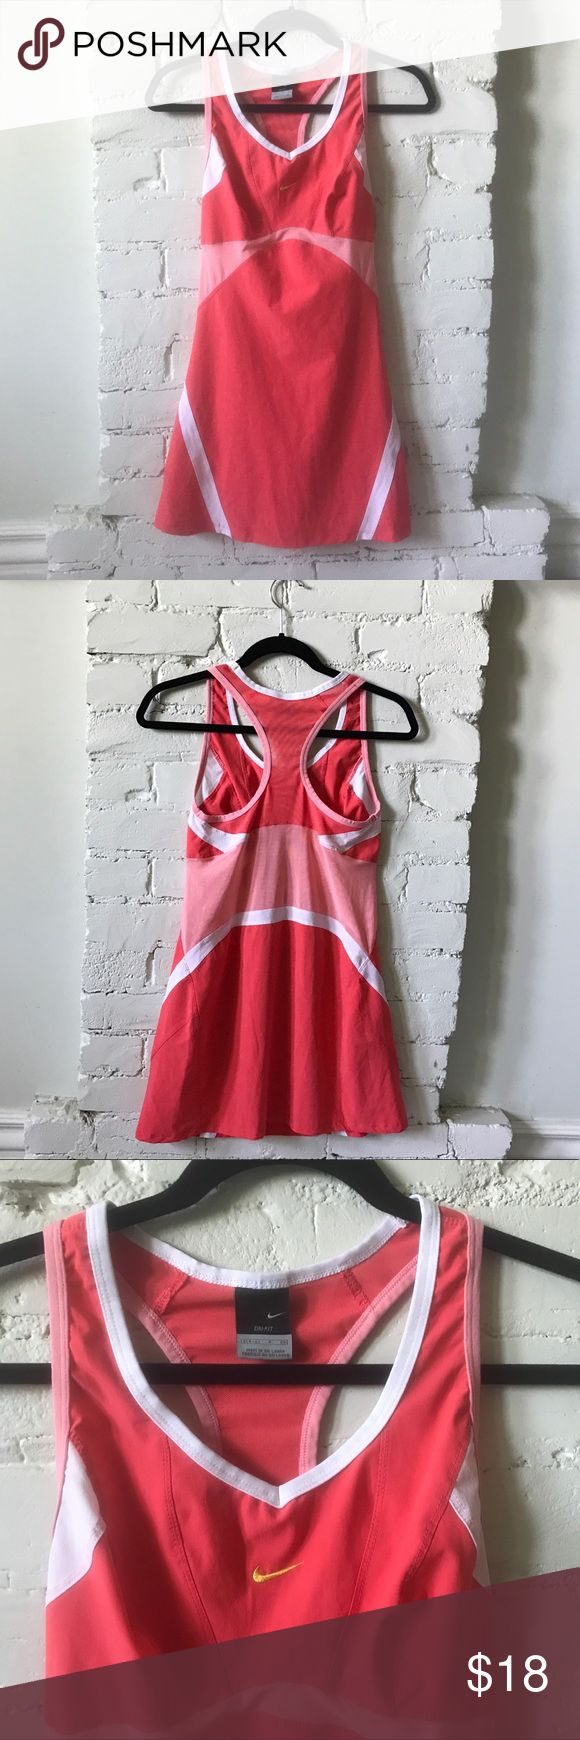 Nike Tennis Dress S Coral/Pink/White Nike tennis dress great for summer!  Good used condition; fit is pretty true to size. Cute mesh detail. Check out my other tennis wear and bundle to save! 🎾 Nike Dresses